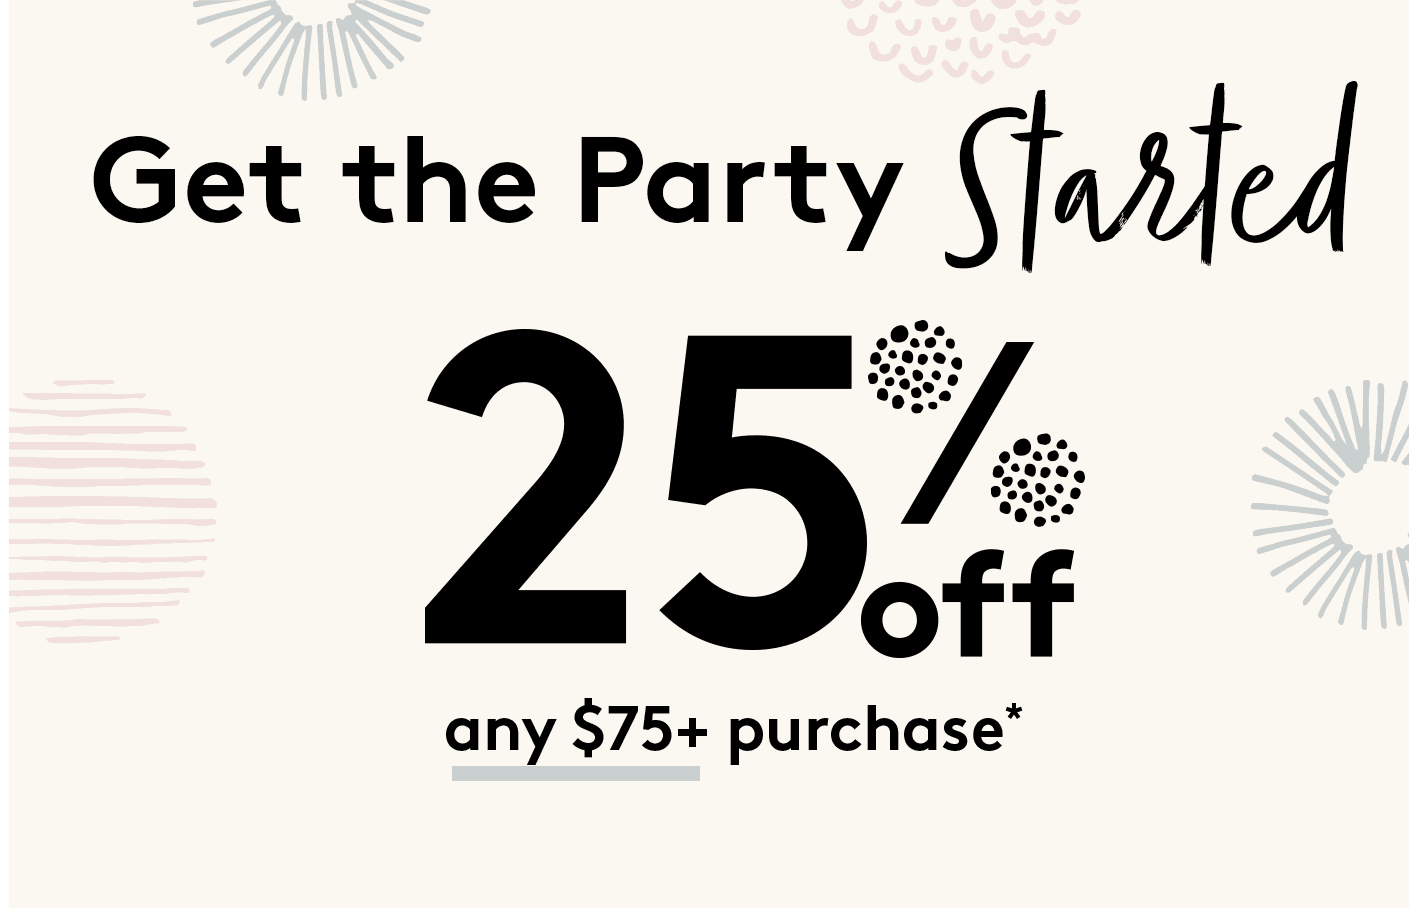 Birchbox Black Friday 2017 Deals Start NOW for Everyone! Up to 25% Off!